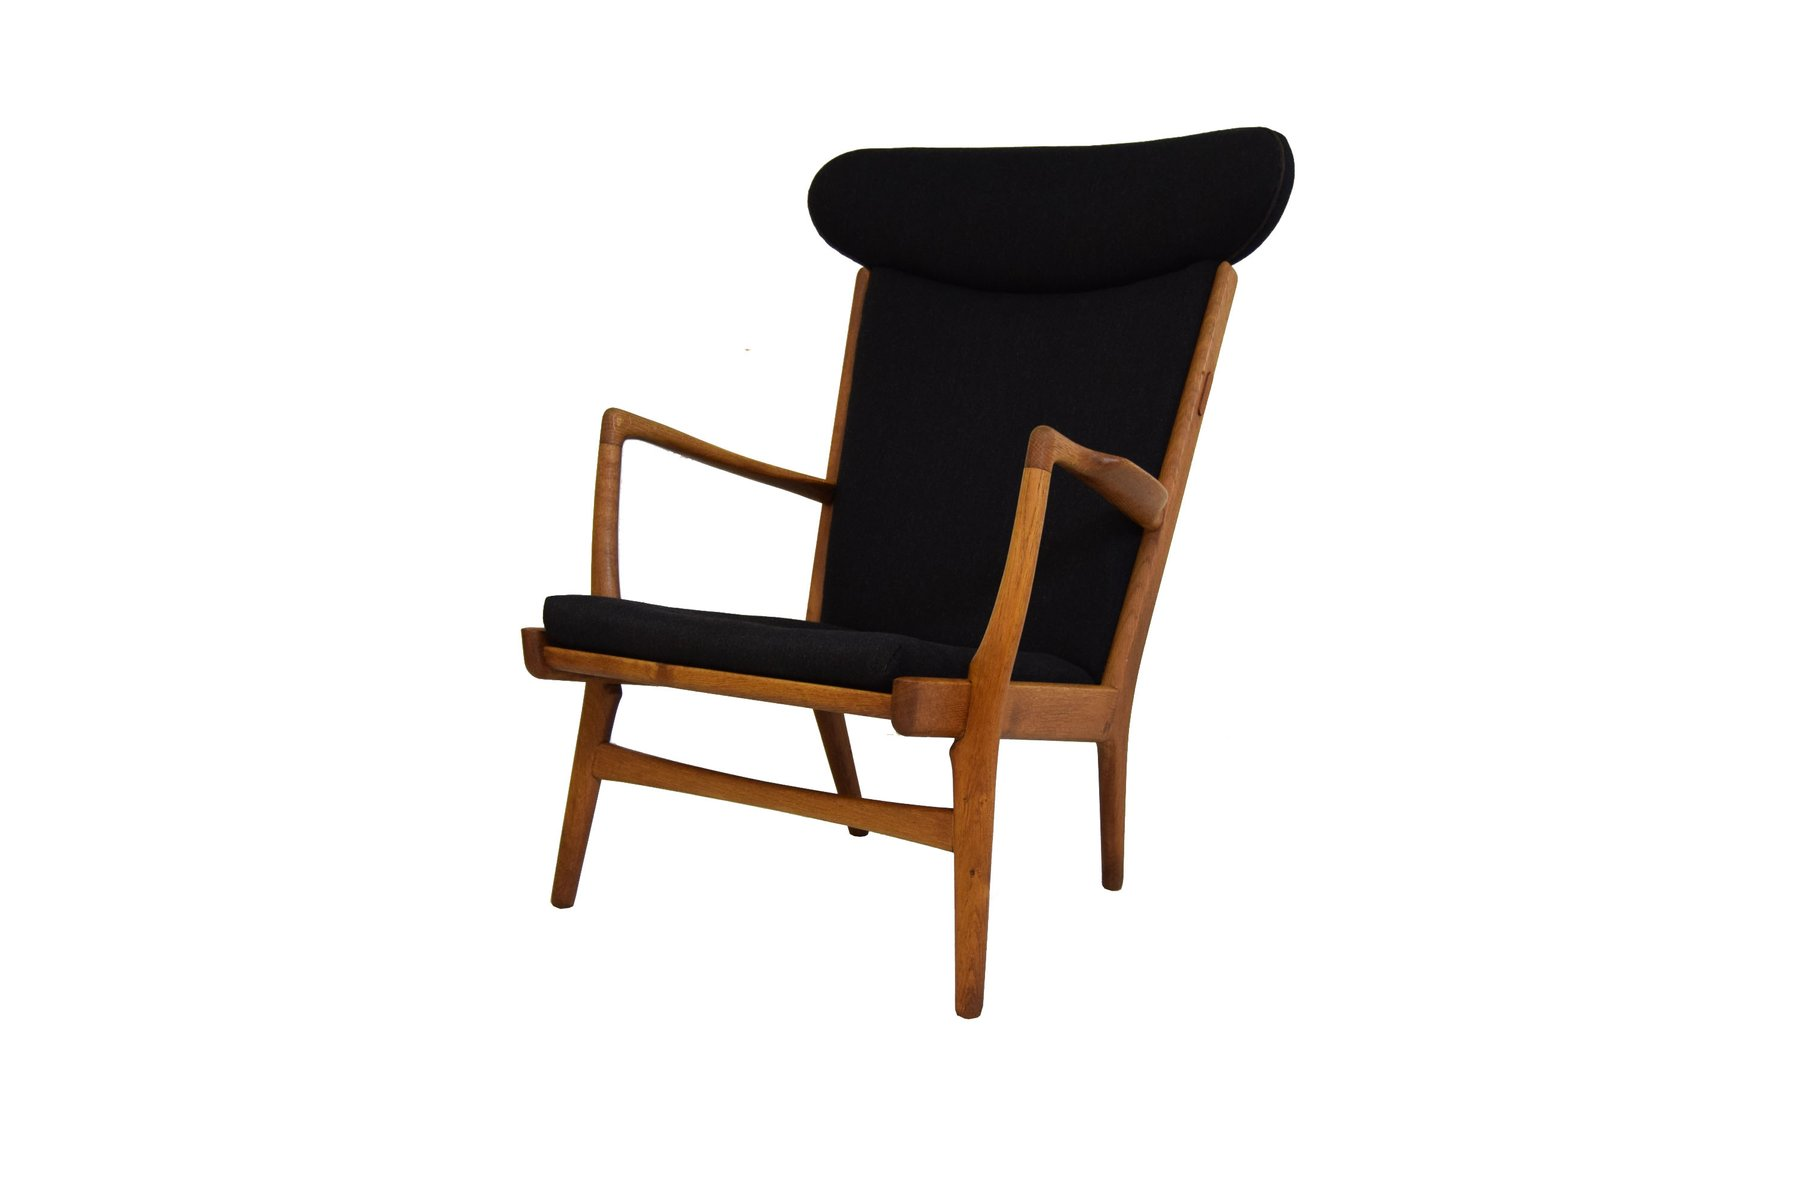 AP 15 Oak Easy Chair by Hans J¸rgensen Wegner for AP Stolen for